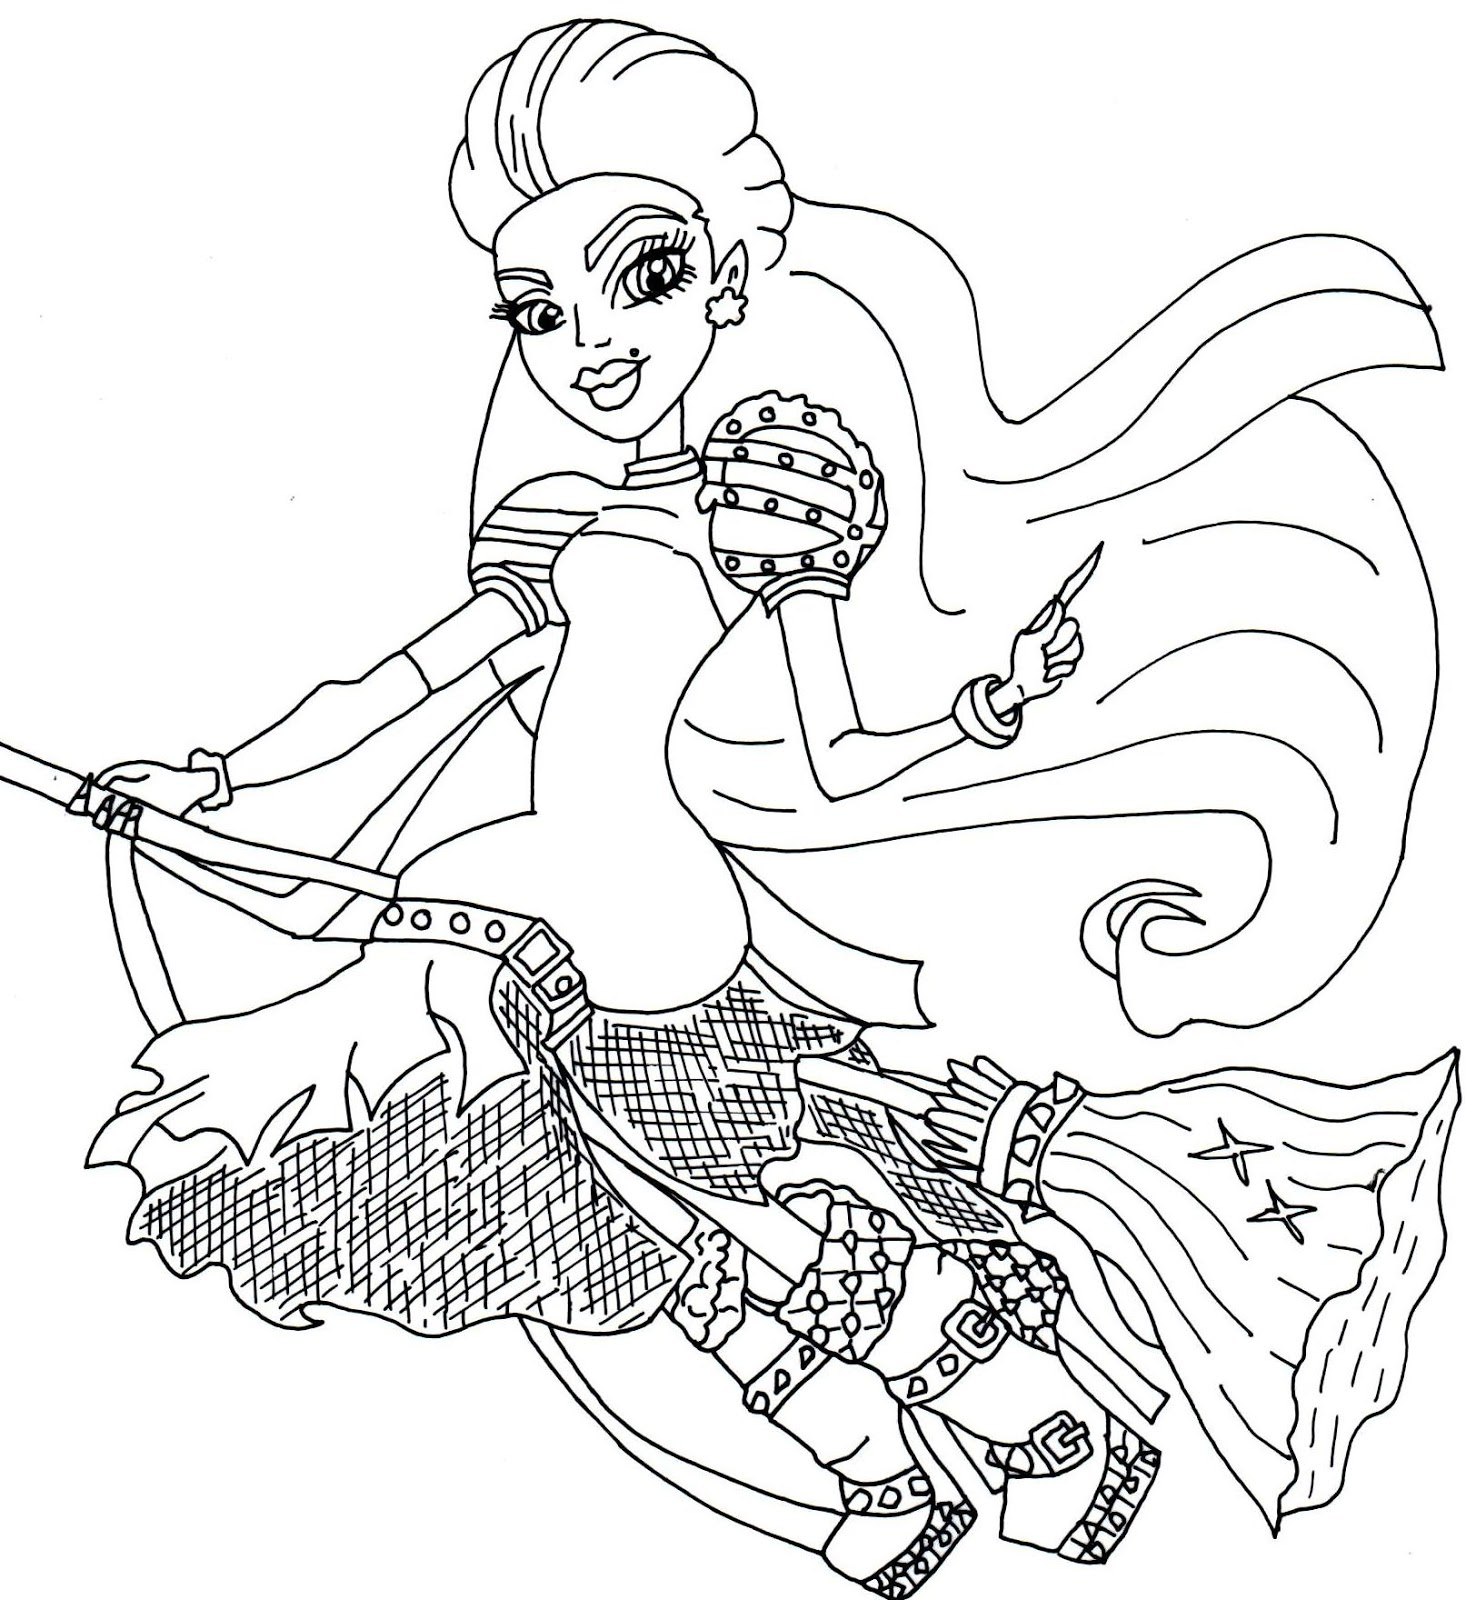 monster high doll coloring page - Coloring Pages Monster High Dolls